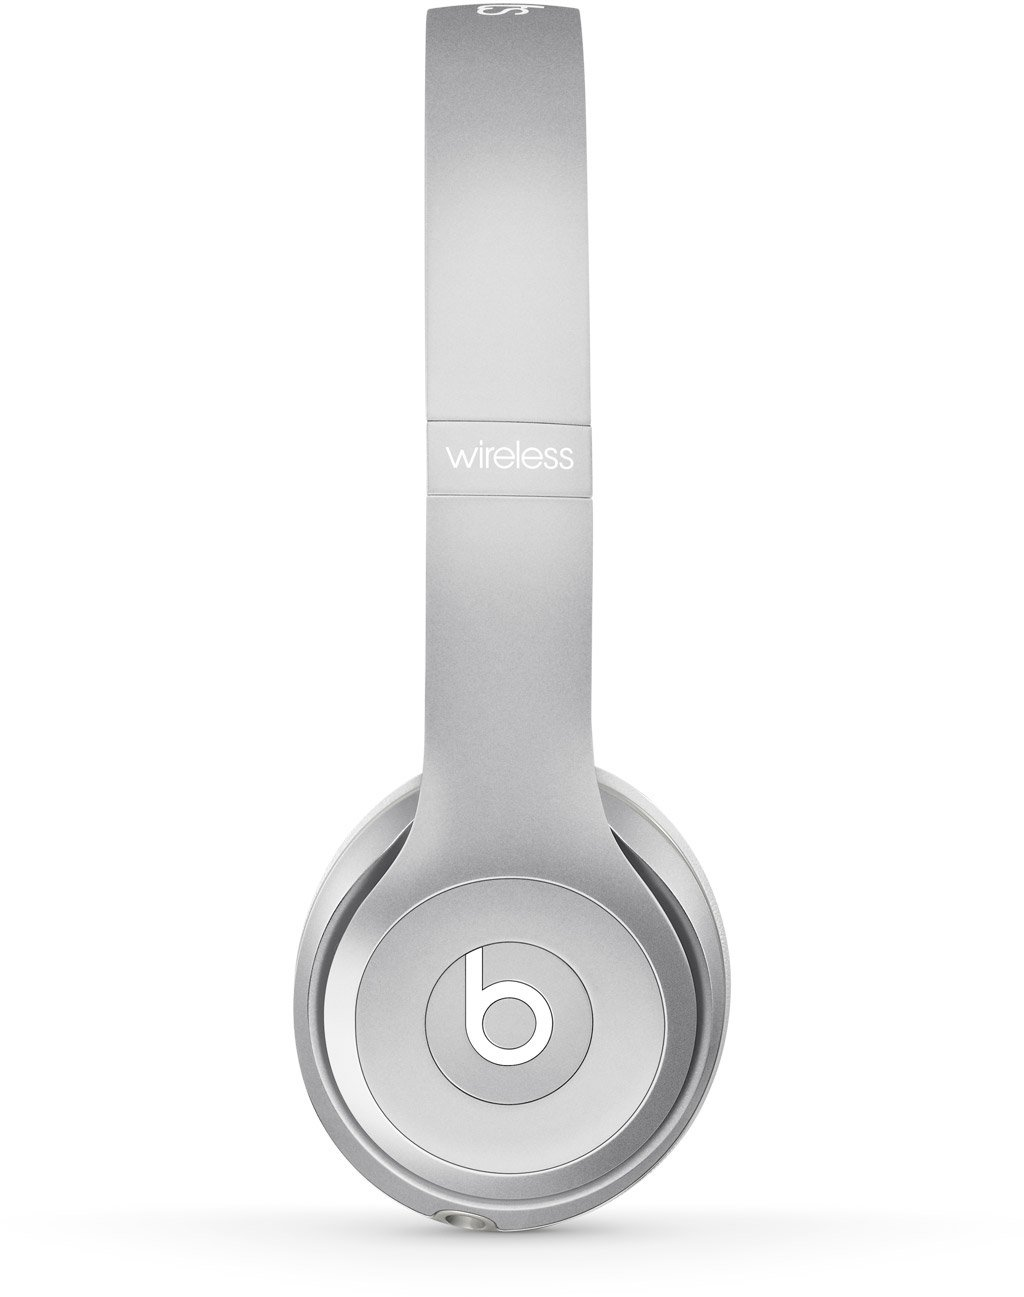 Beats Solo 2 Wireless - Auriculares de diadema abiertos, color plata: Amazon.es: Electrónica